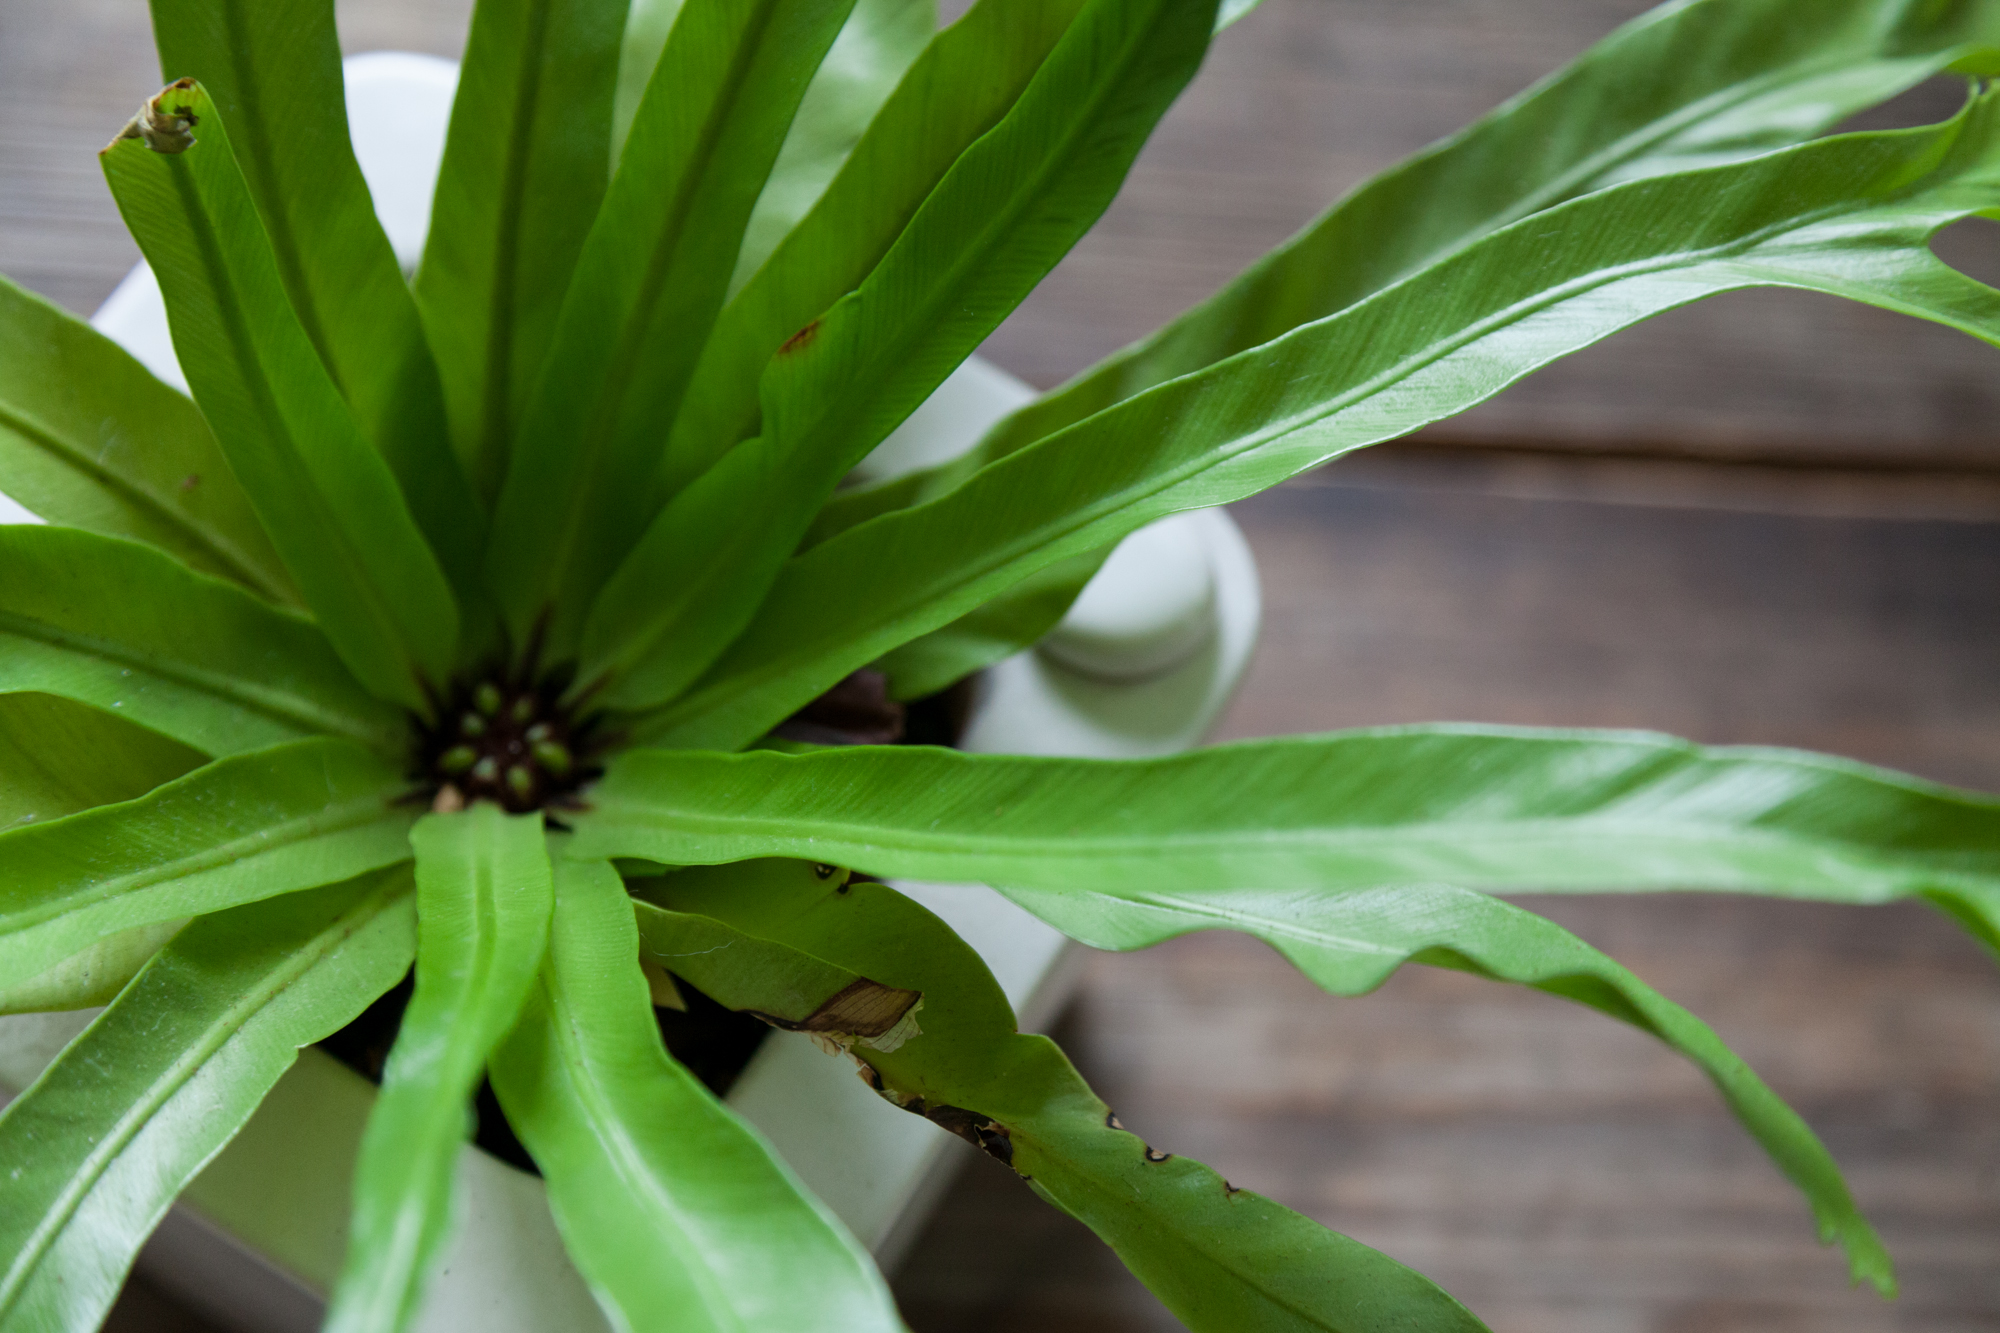 I like to keep my ferns in planters that can regulate their own water. Though this particular planter is now hard to come by, I highly recommend it. Here's my bird's nest fern in this planter.